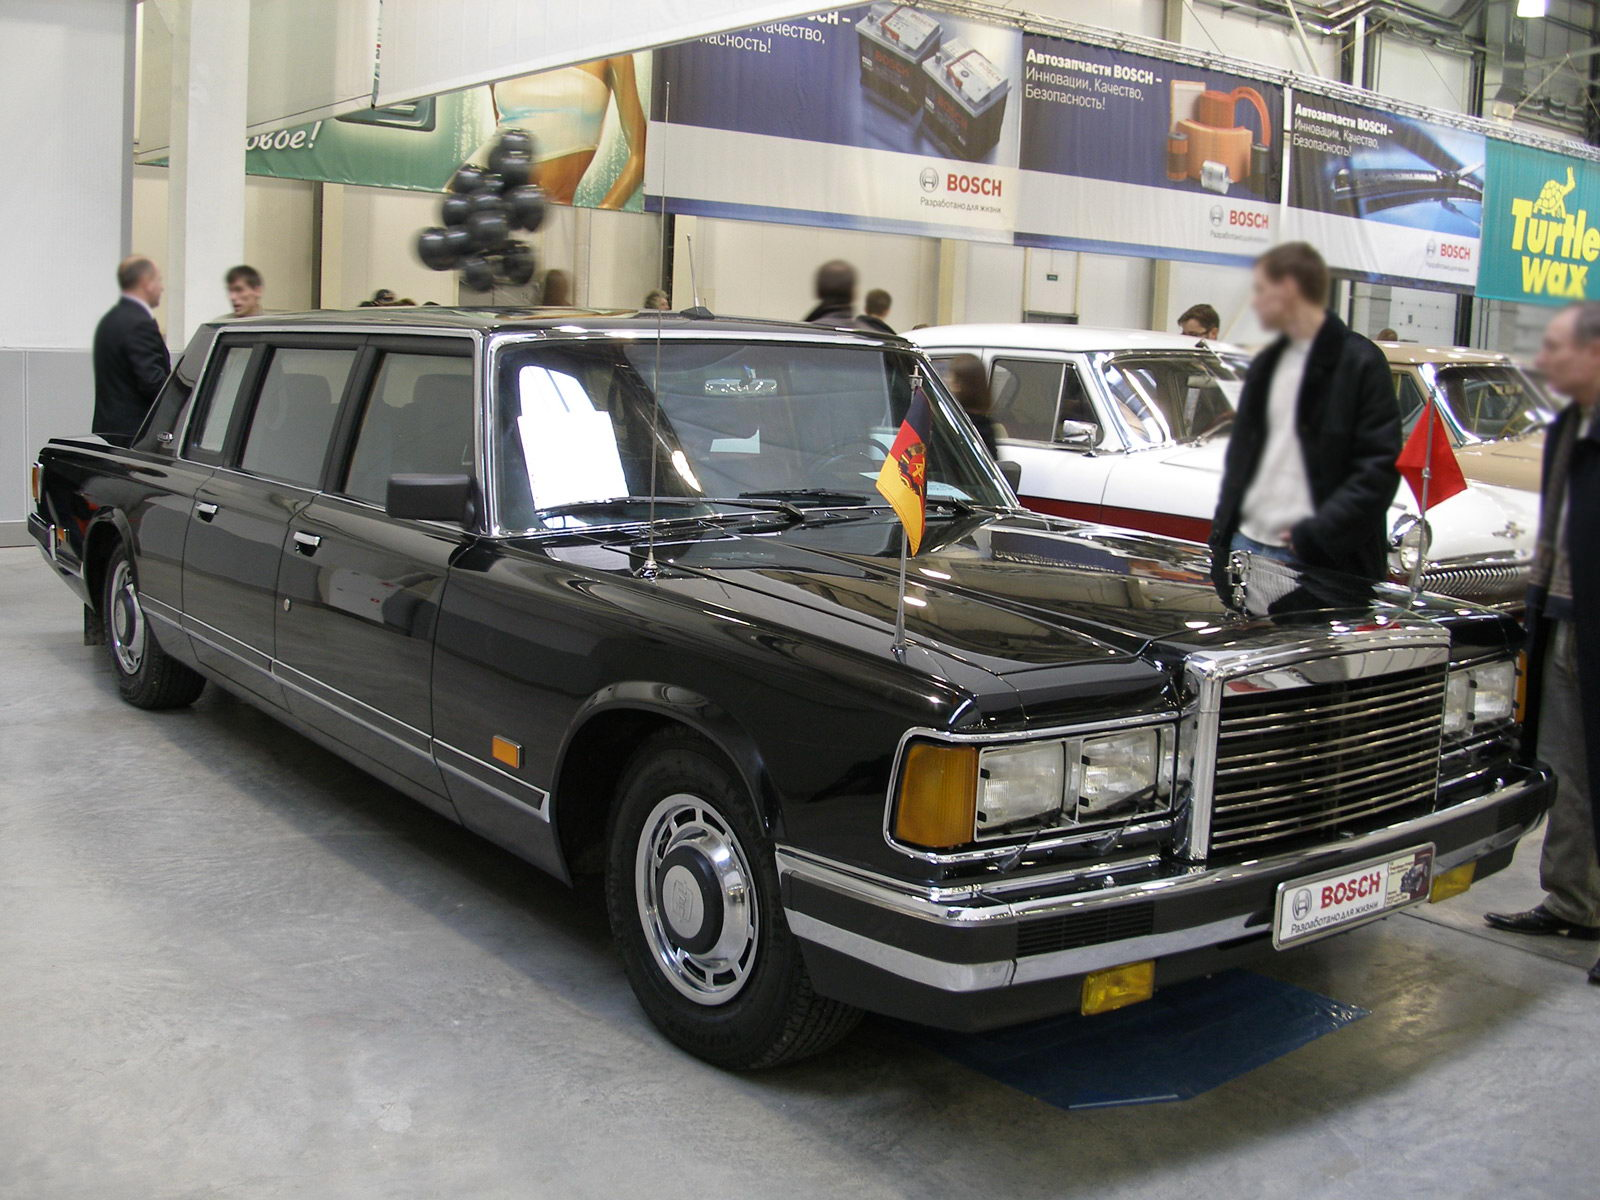 Zil 41047 Photos Photogallery With 7 Pics Carsbase Com